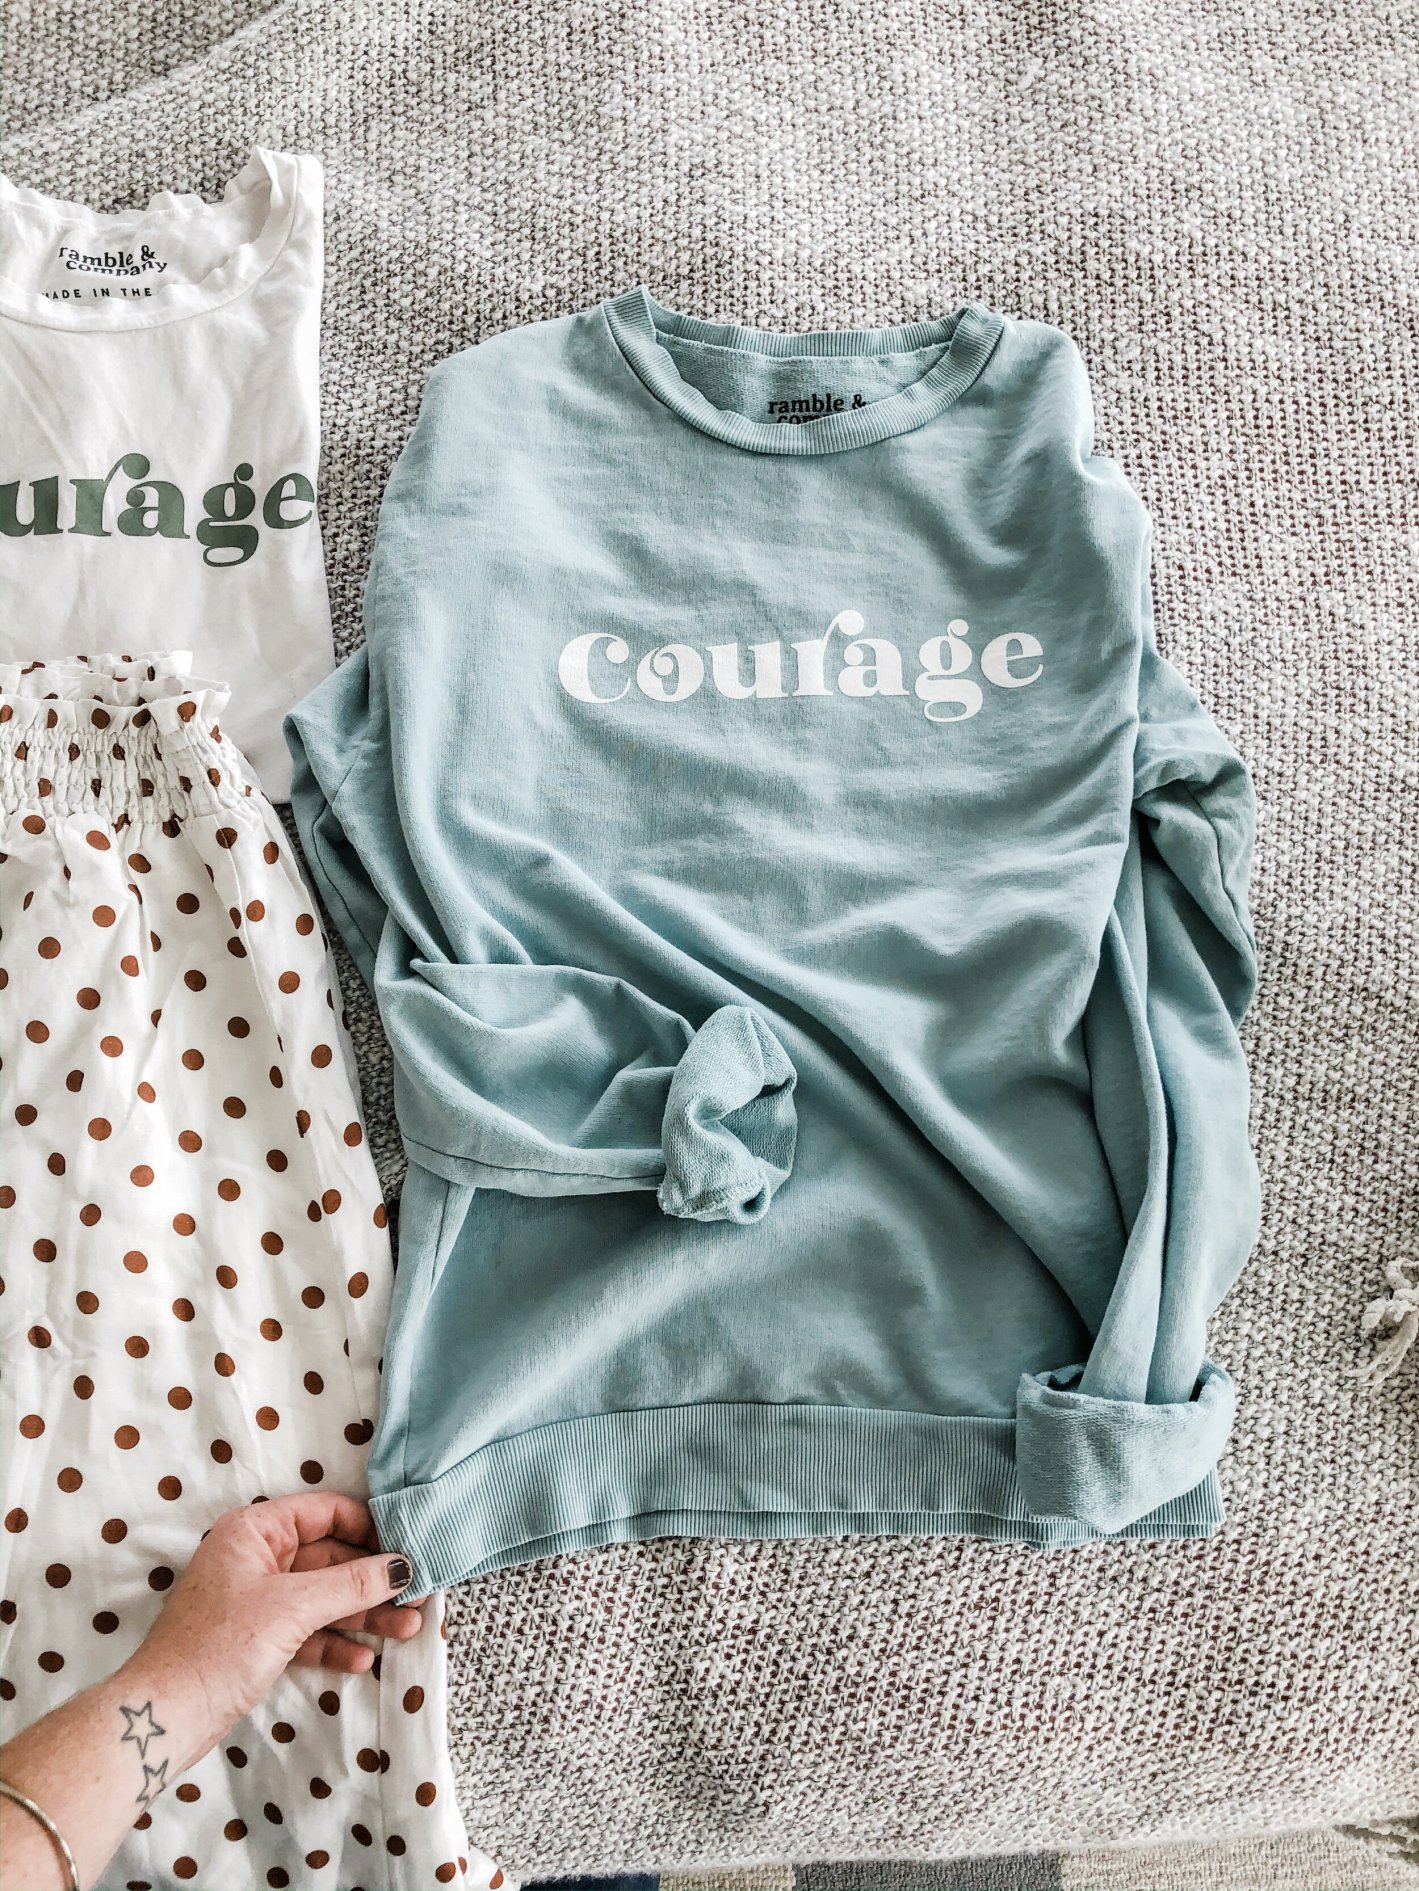 courage sweatshirt.jpg